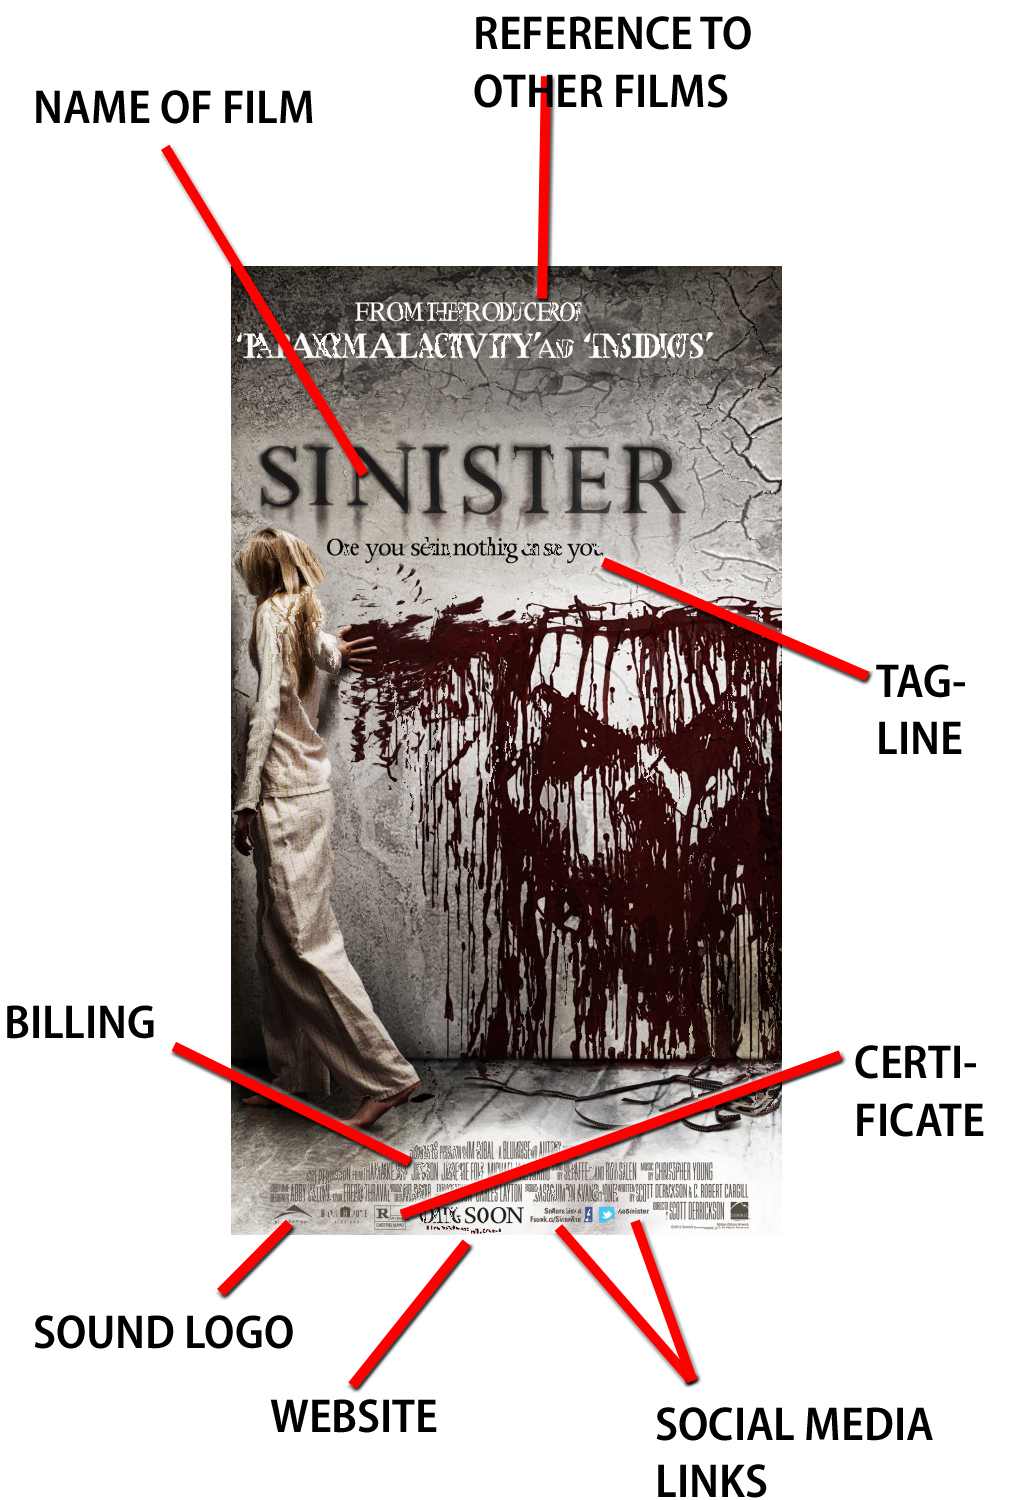 Francesca's A2 Media Blog: Horror Poster Analysis 1- Sinister